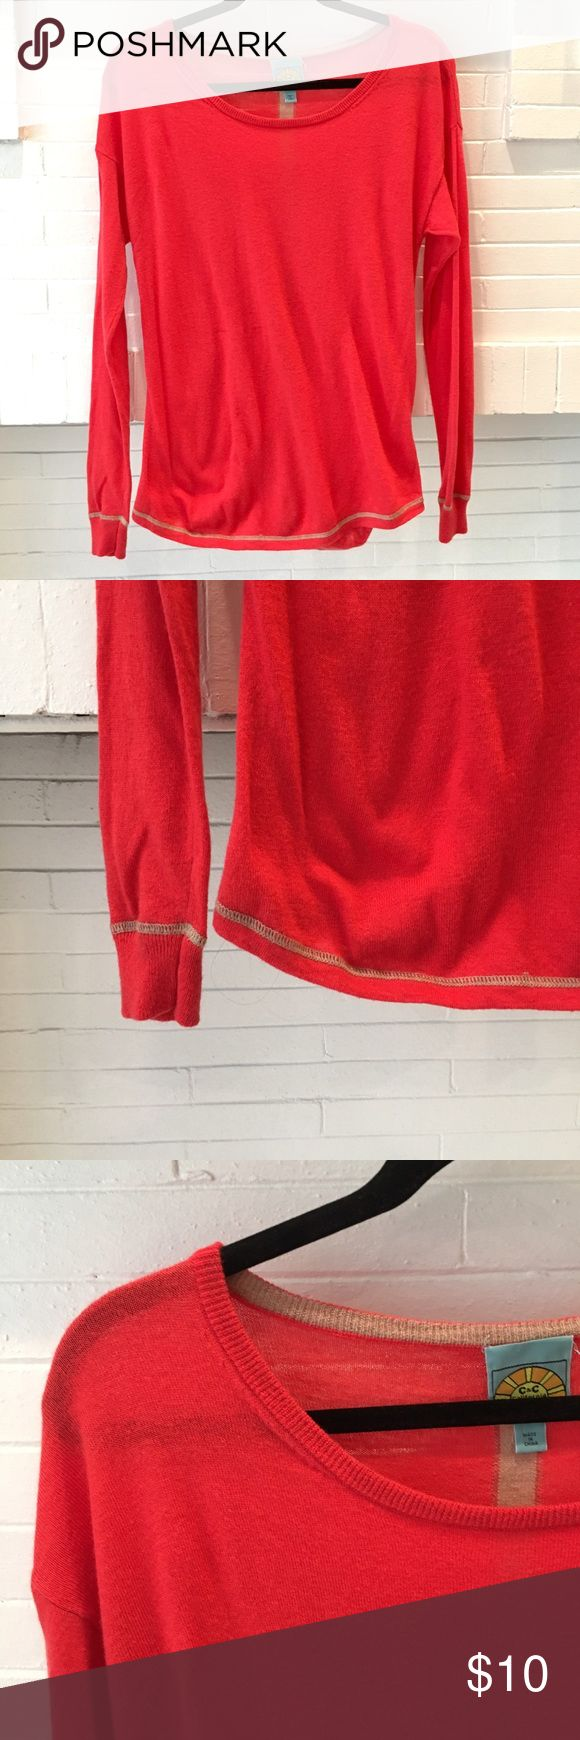 C&C California Light Sweater/Top Lightweight cashmere blend for cool summer nights. Very breezy material. Light enough to wear in spring and summer and transitions into fall and winter. 35% nylon, 35% rayon, 25% wool, 5% cashmere. C&C California Sweaters Crew & Scoop Necks